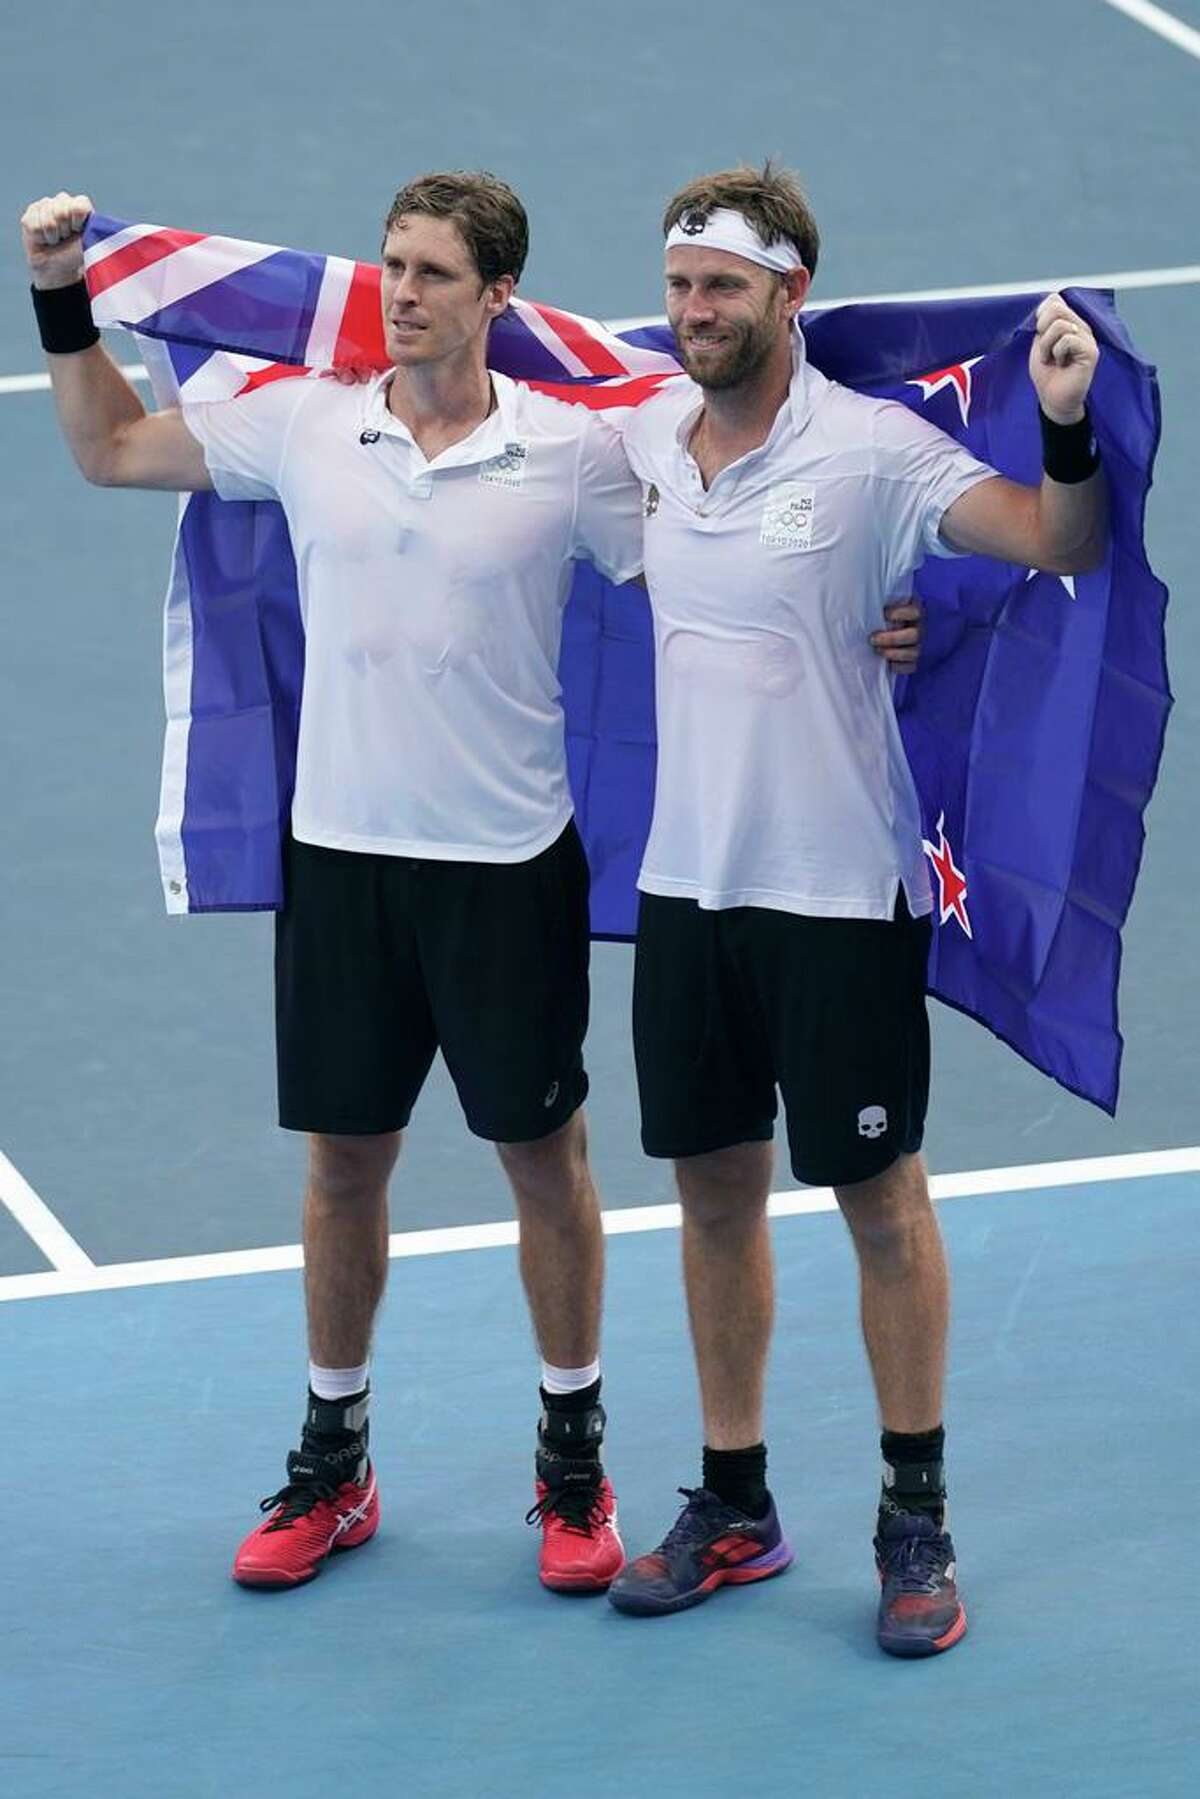 The New Zealand doubles team of Michael Venus, right, and Marcus Daniell celebrate with the flag of their country after defeating the team from the United States during the men's doubles bronze medal match of the tennis competition at the 2020 Summer Olympics, Friday, July 30, 2021, in Tokyo, Japan. Daniell practiced in Salisbury, Conn. during the pandemic.